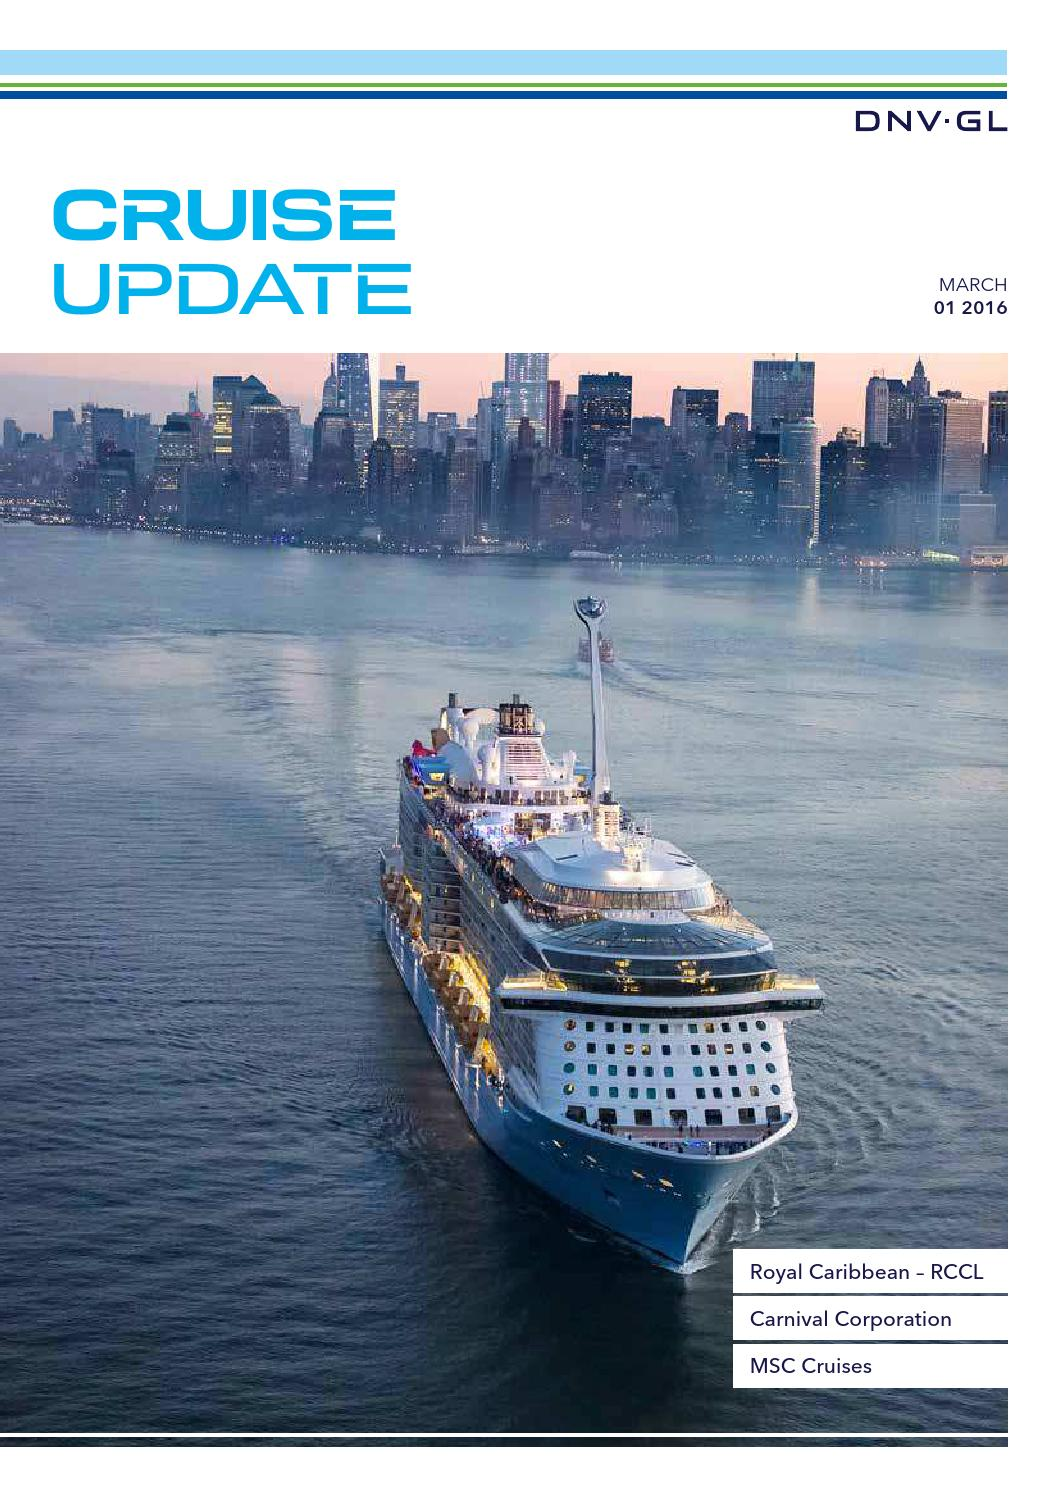 Dnv gl cruise update 1 2016 by dnv gl issuu falaconquin